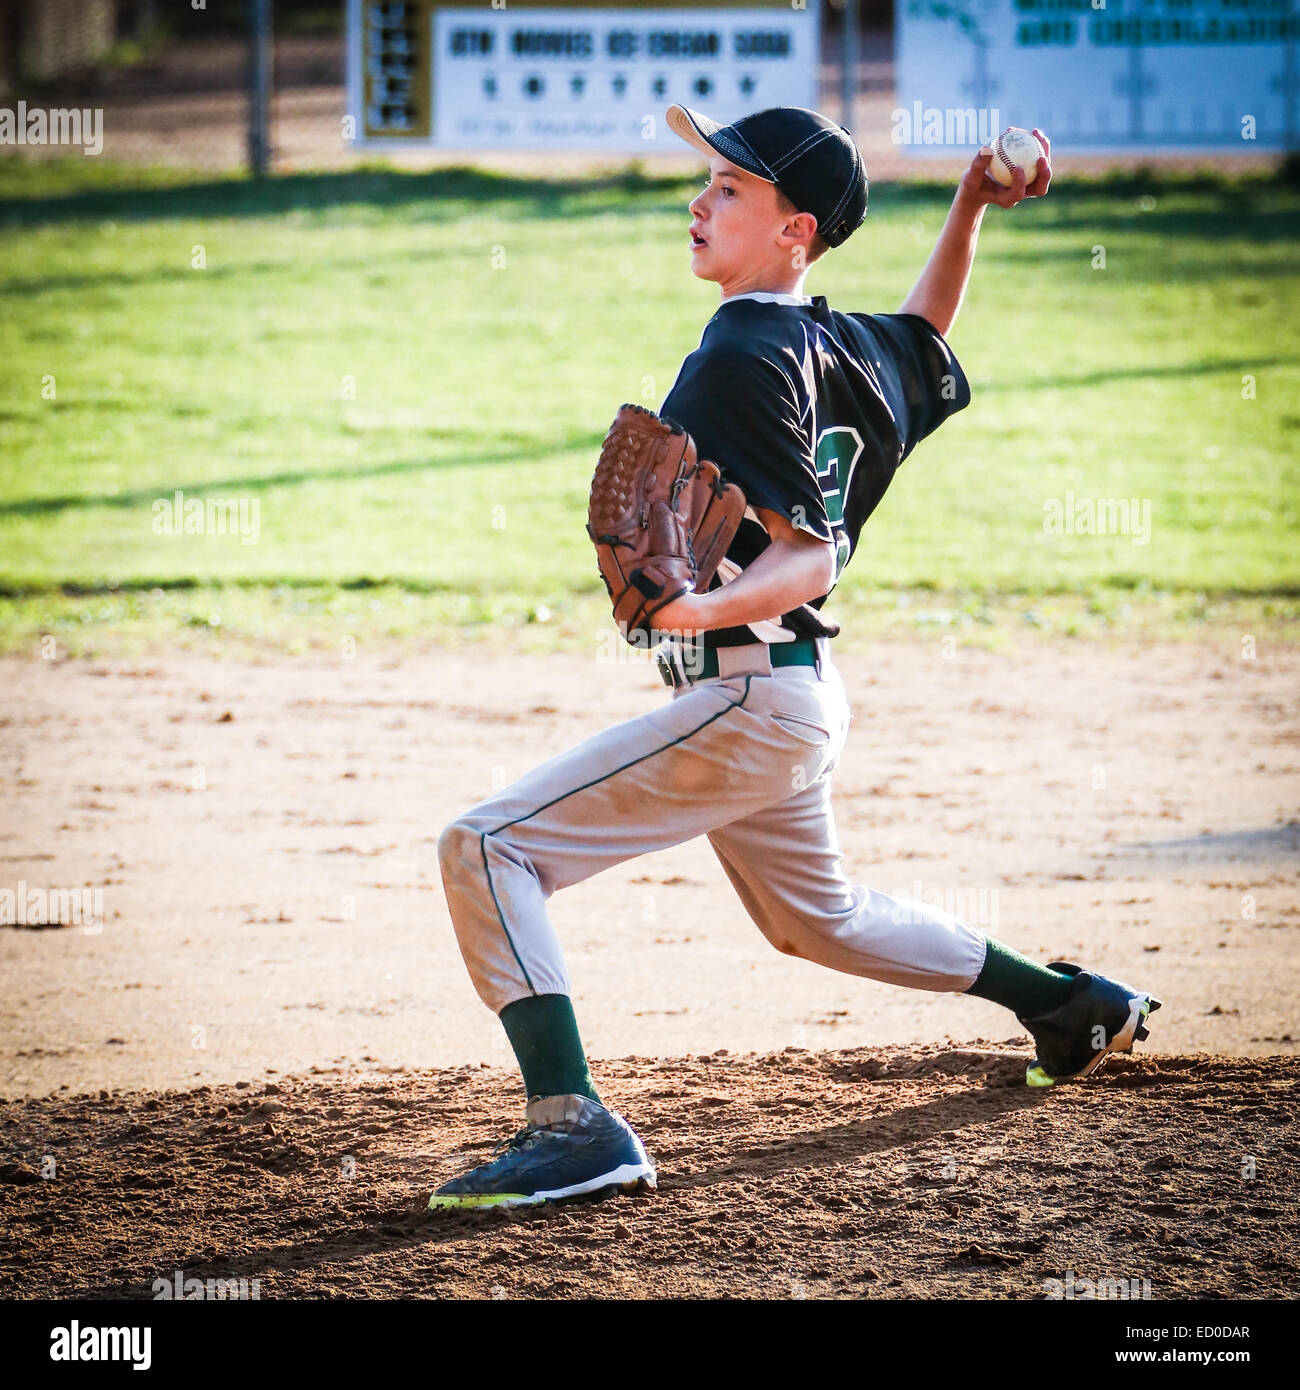 USA, Young boy (10-11) pitching on pitchers mound - Stock Image